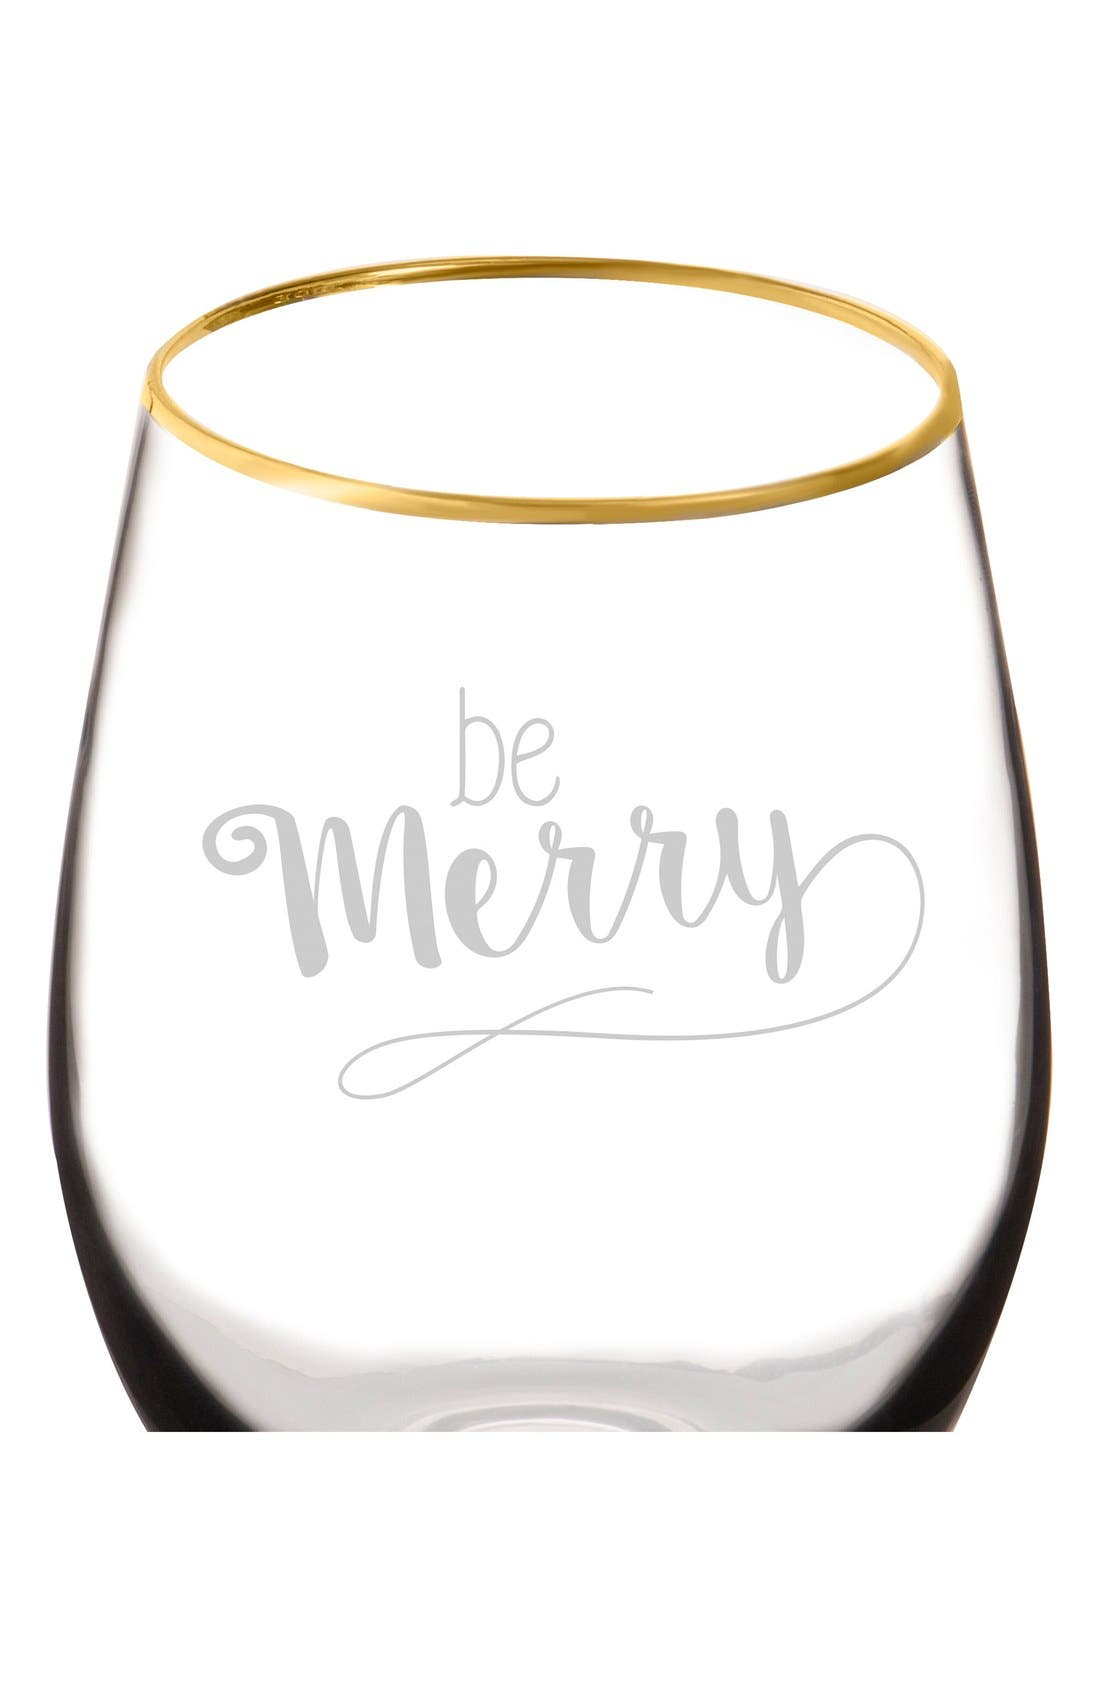 Be Merry Set of 4 Stemless Wine Glasses,                             Alternate thumbnail 4, color,                             710